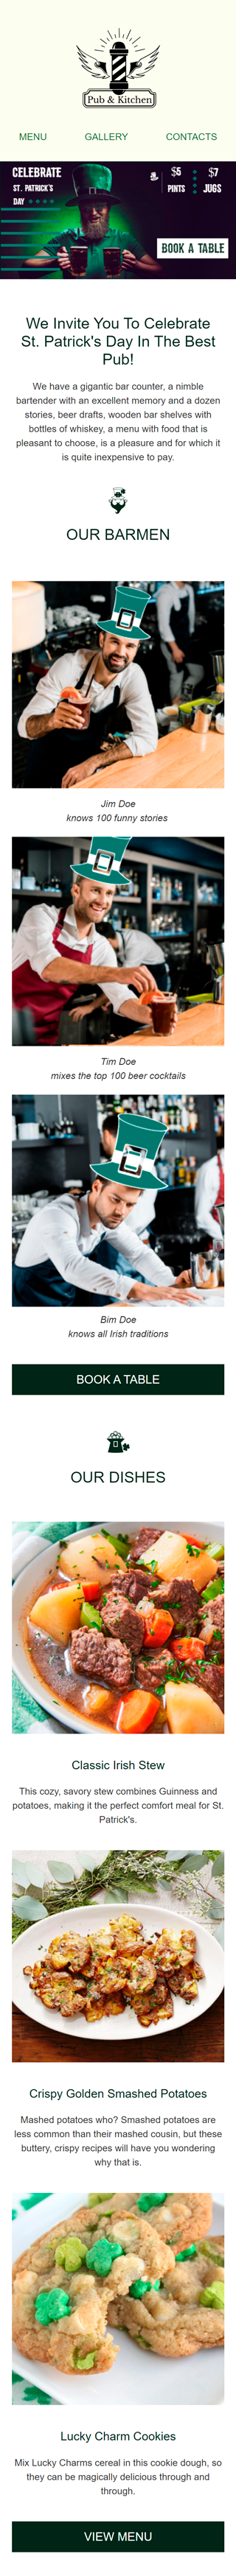 St. Patrick's Day Email Template «In The Best Pub» for Food industry mobile view